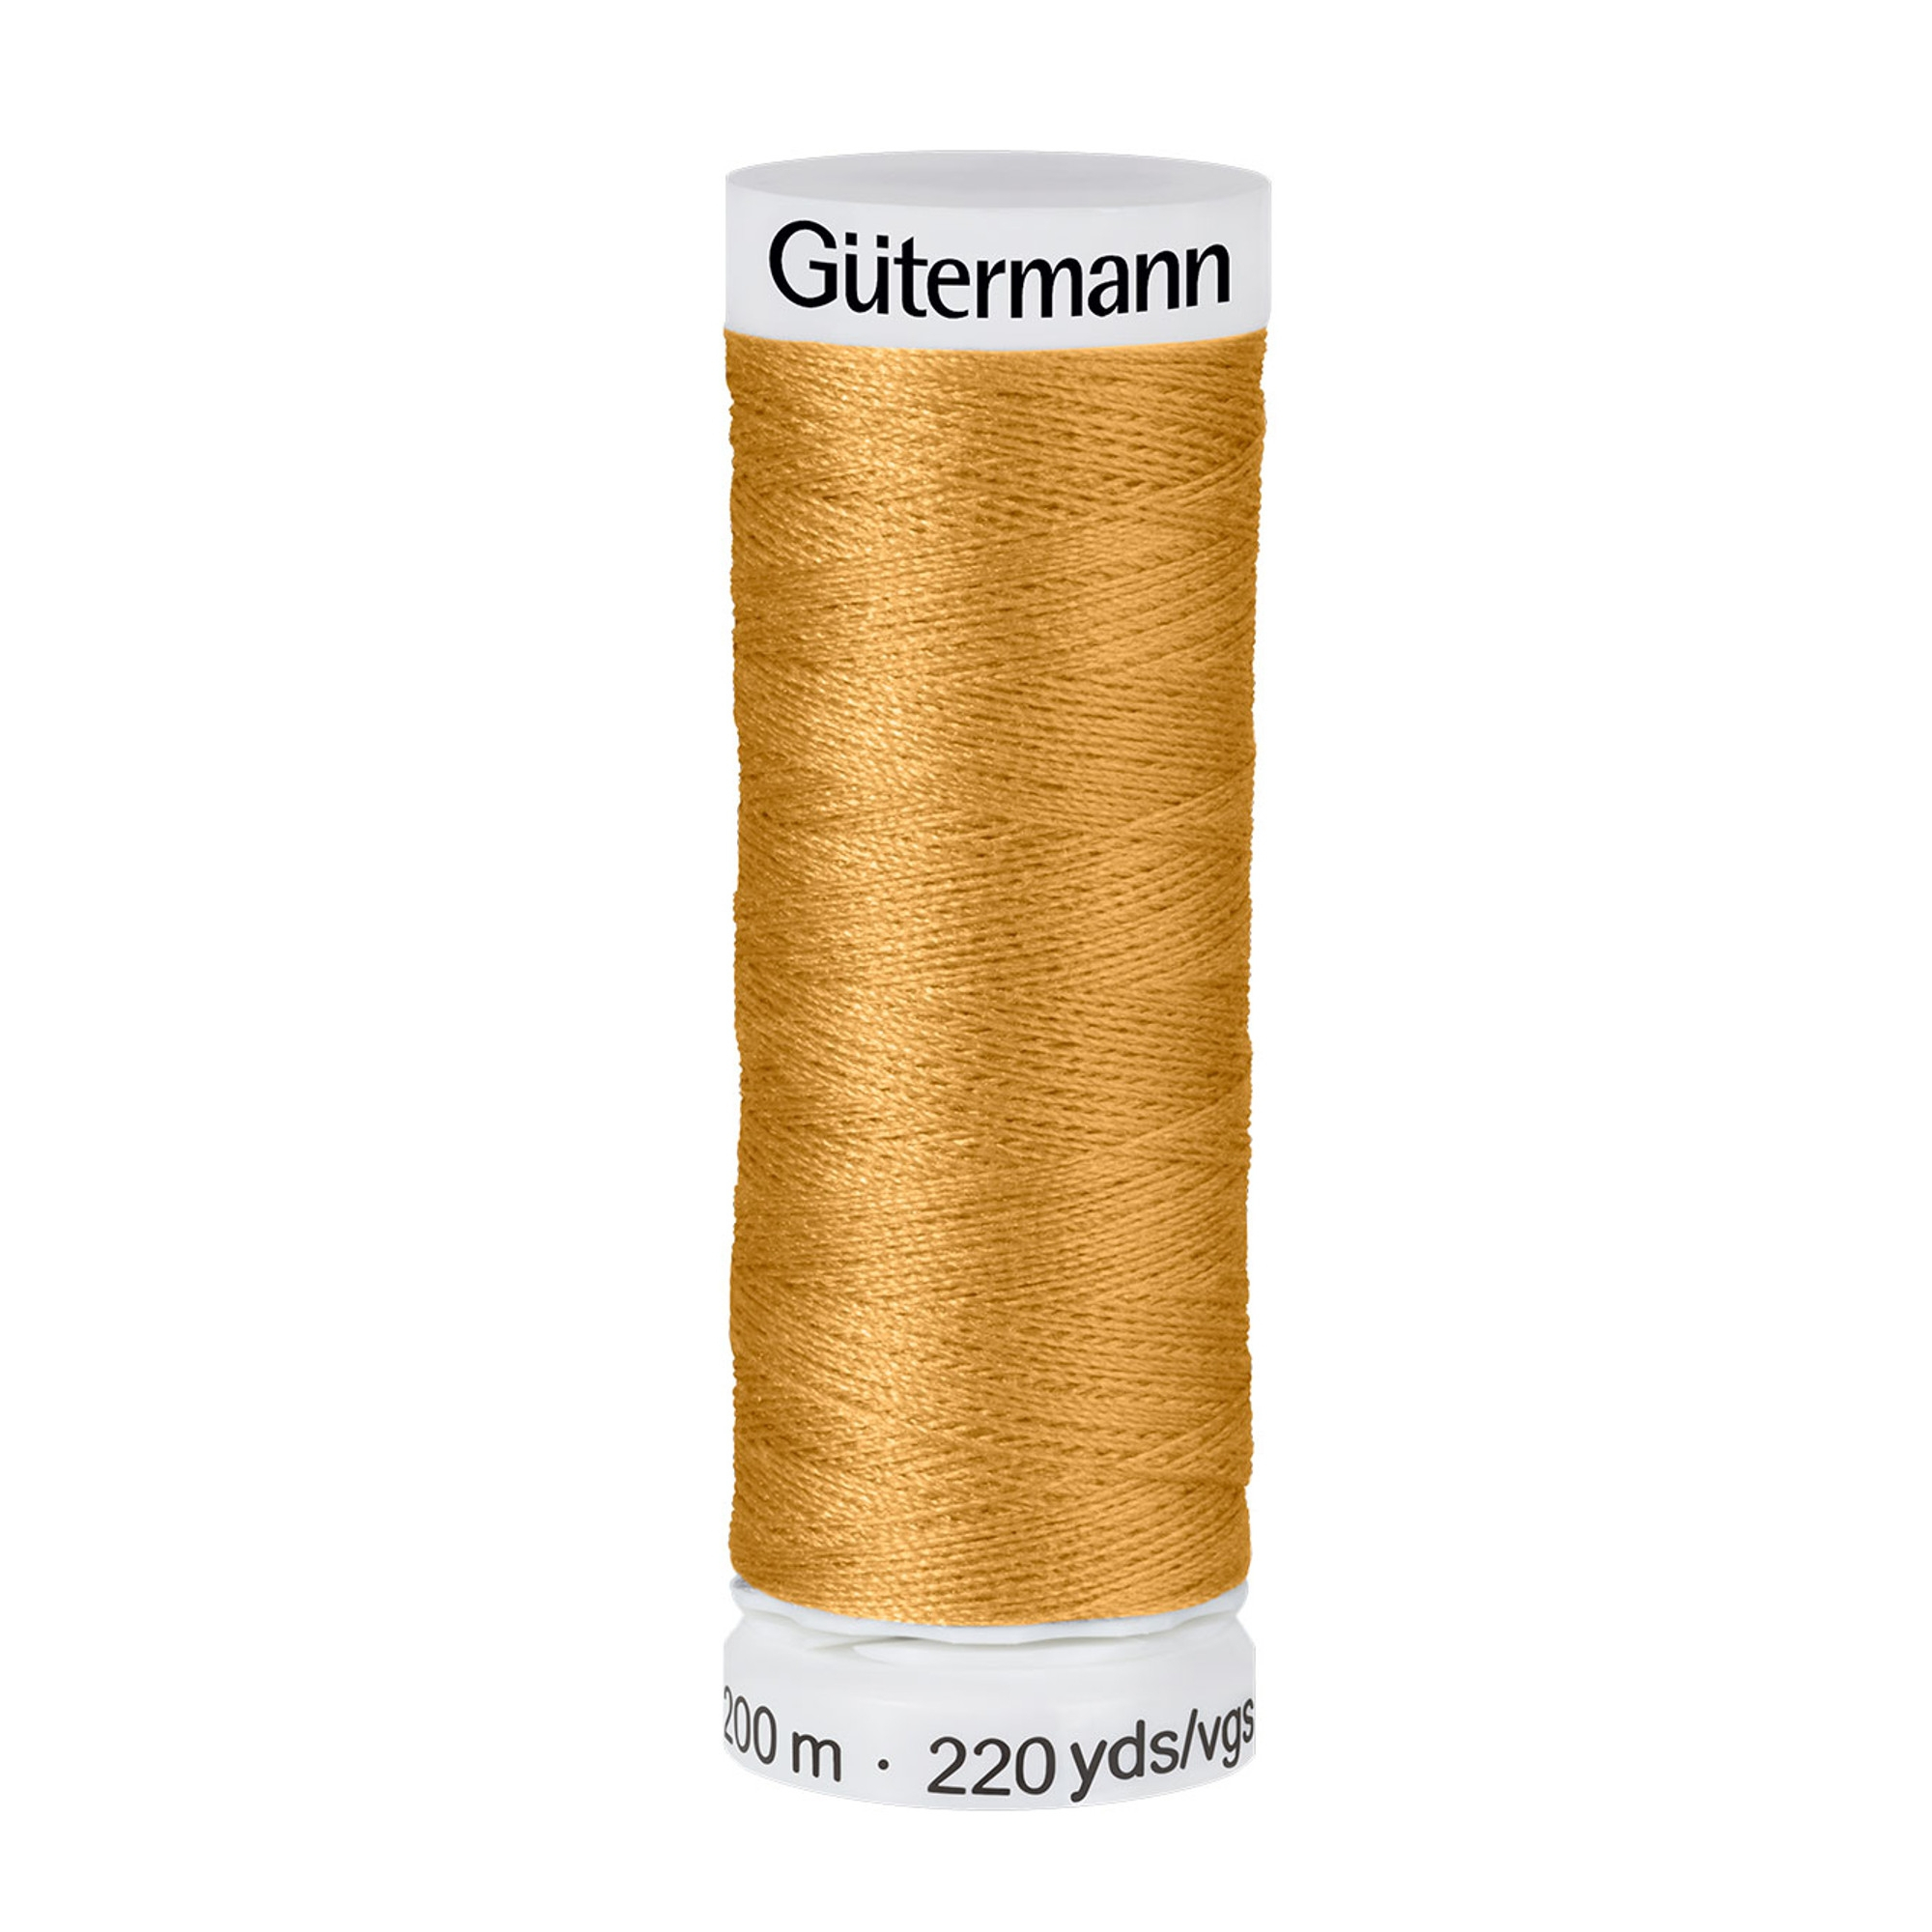 Gütermann garen (412) | 200M-412 | gold